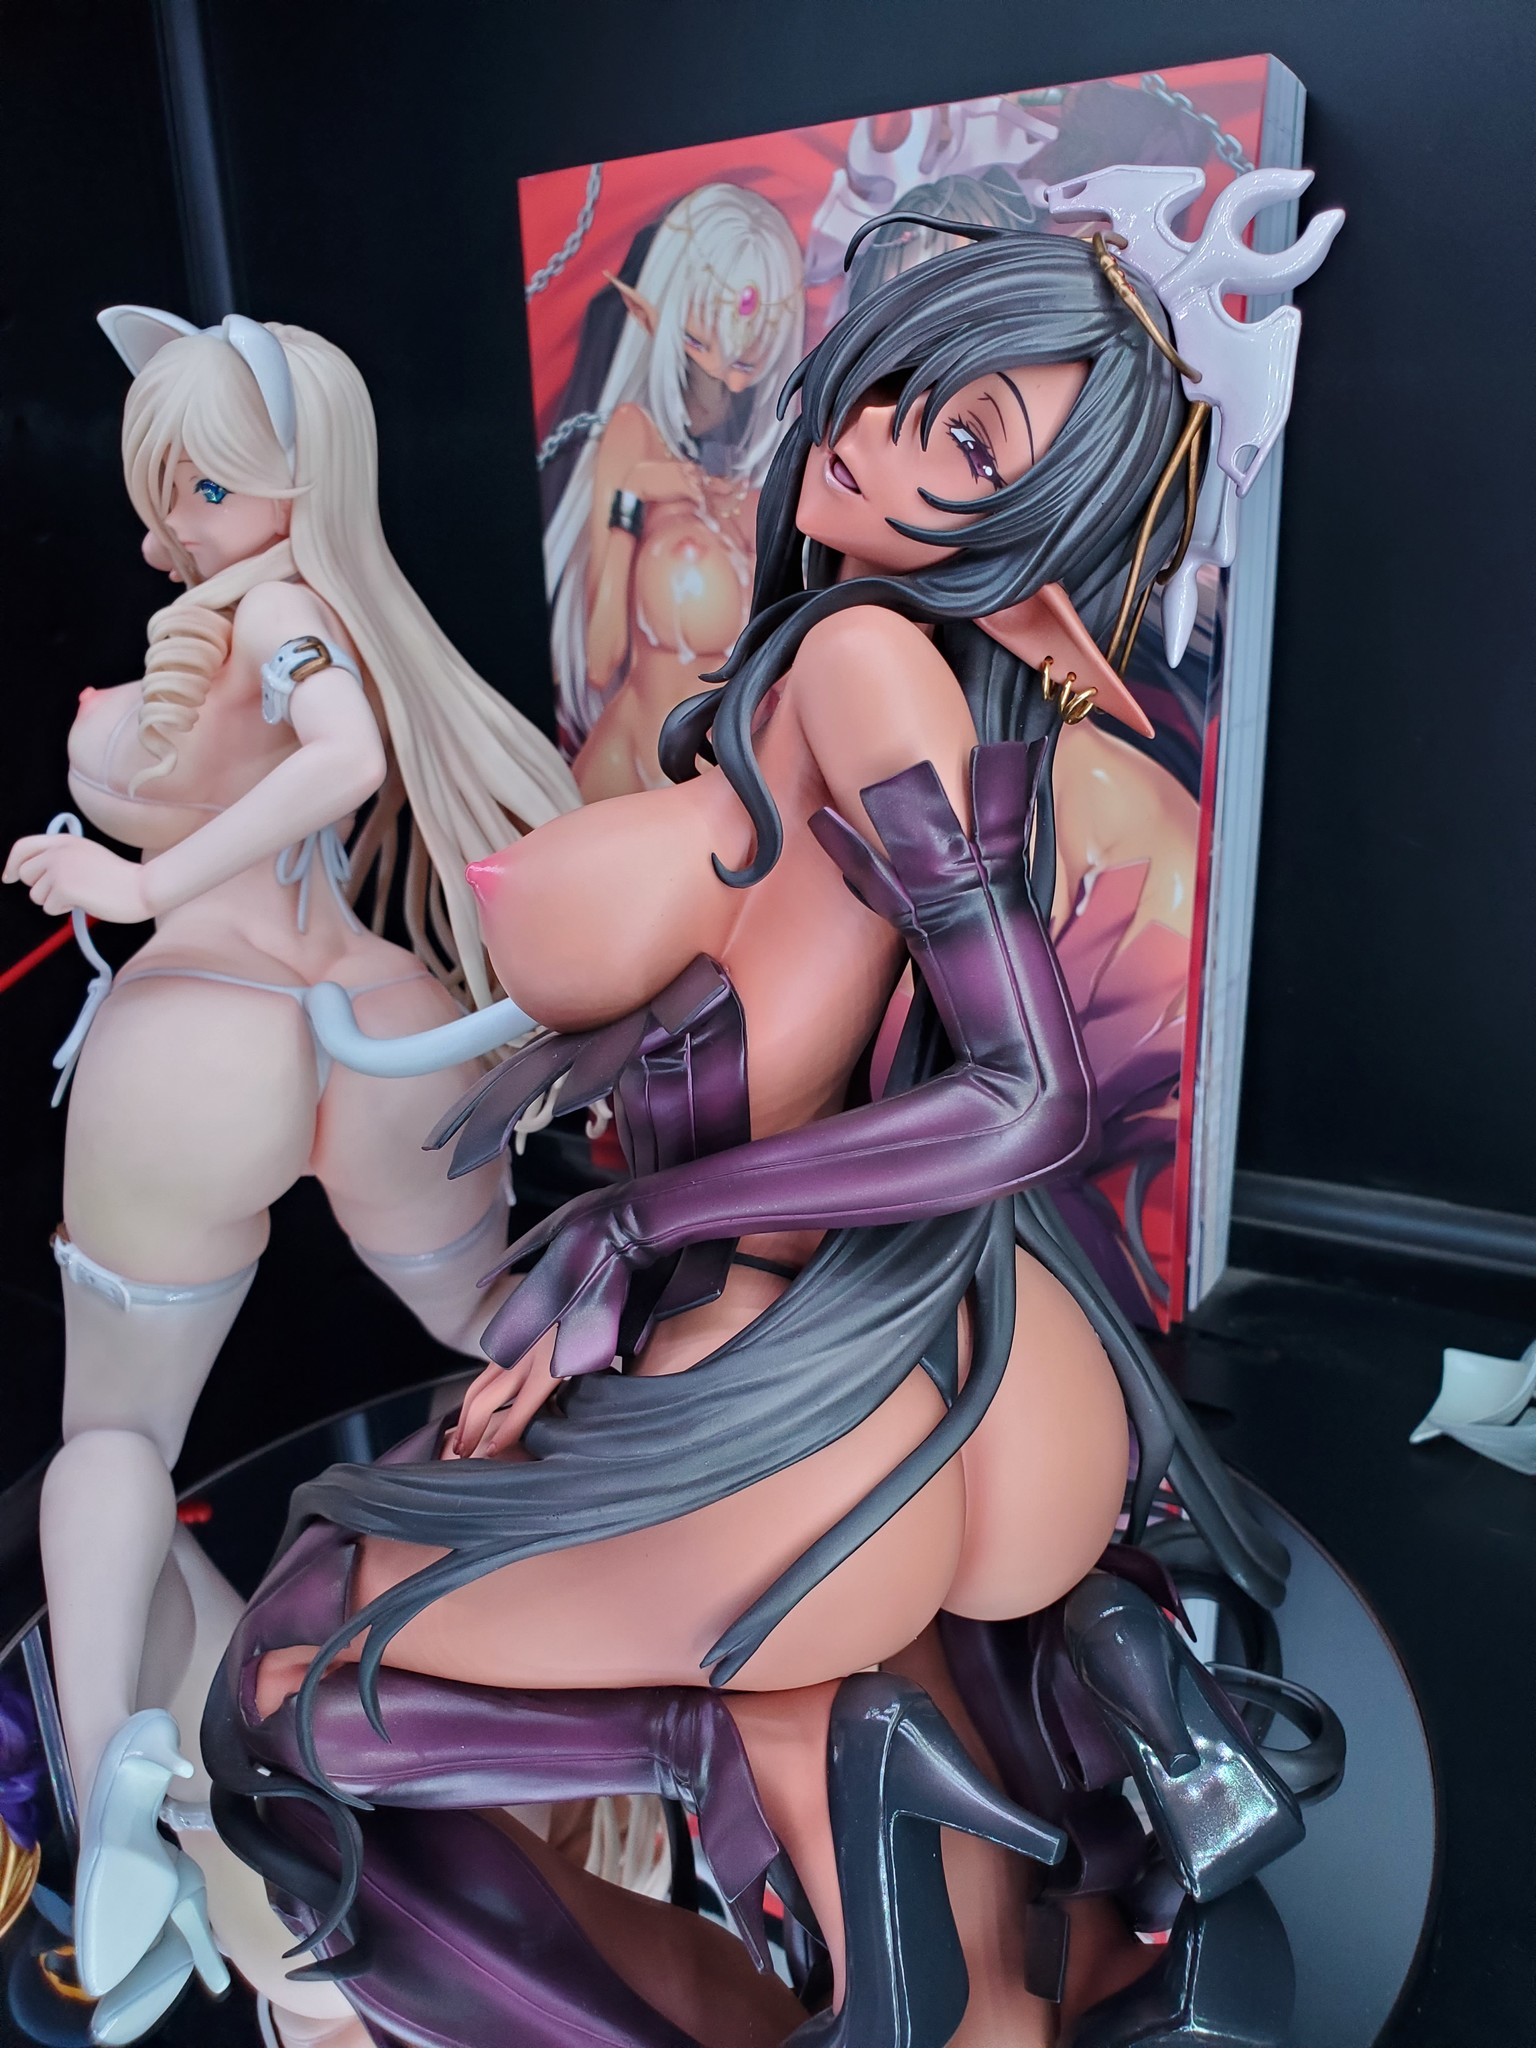 https://static.myfigurecollection.net/upload/pictures/2020/10/03/2533484.jpeg